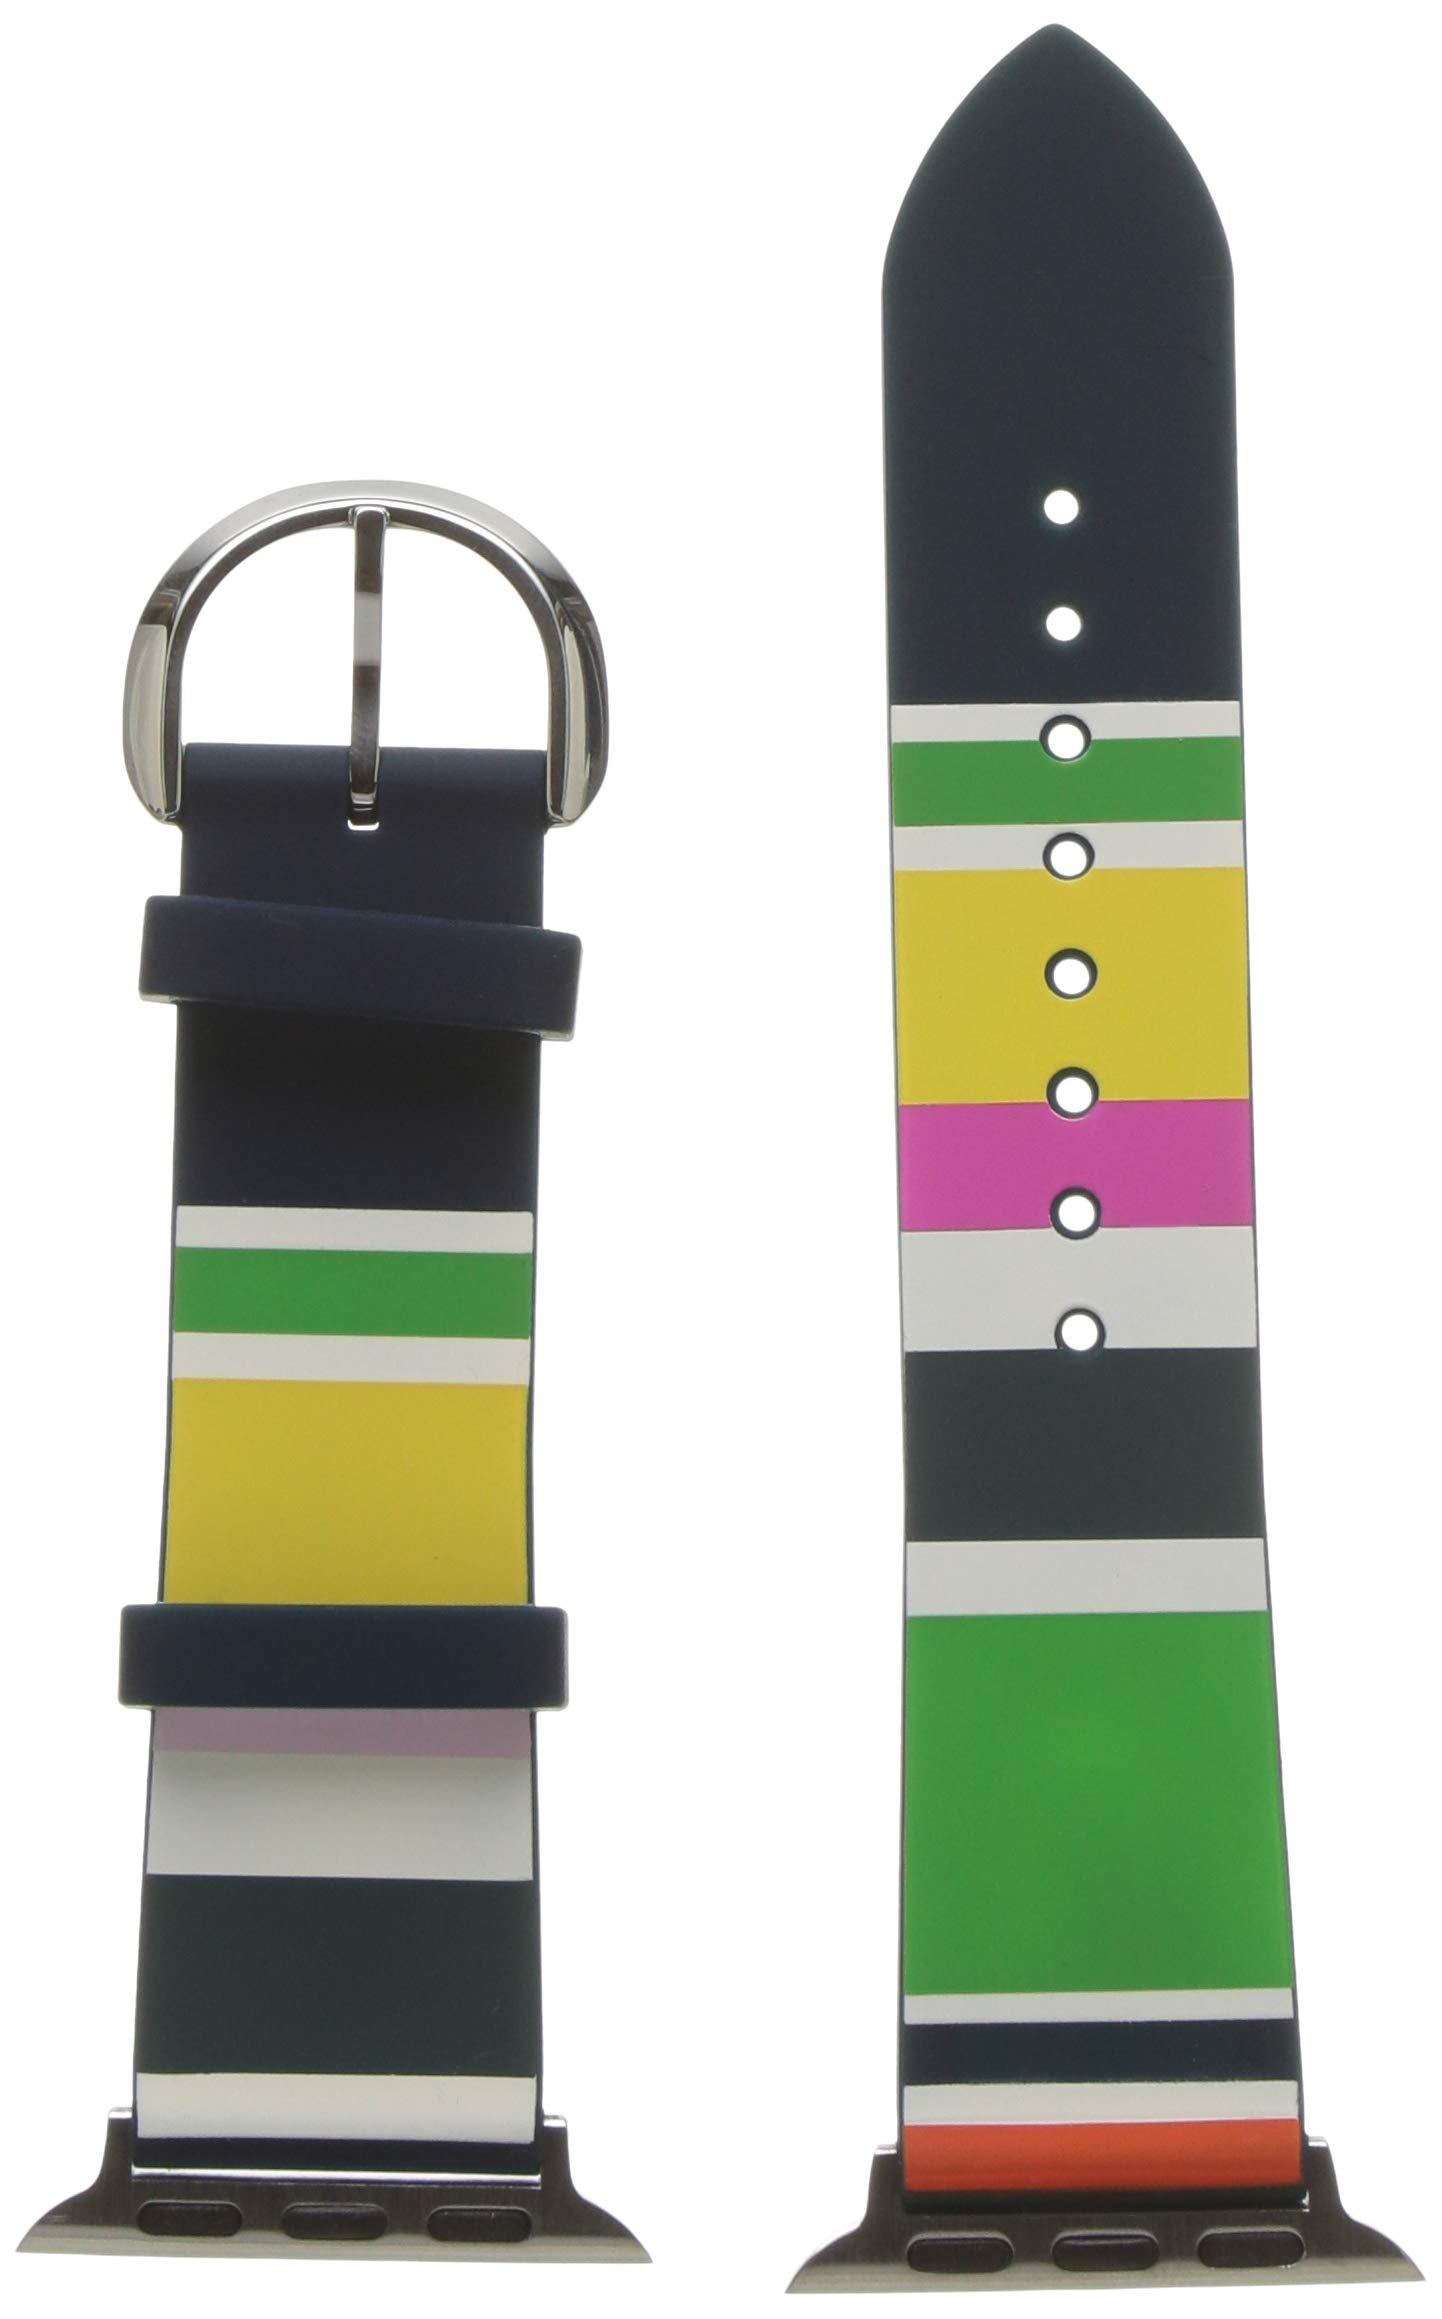 kate spade new york Apple Watch Band Multi-Colored Silicone 38/40mm Strap- KSS0029 Color: Multicolor